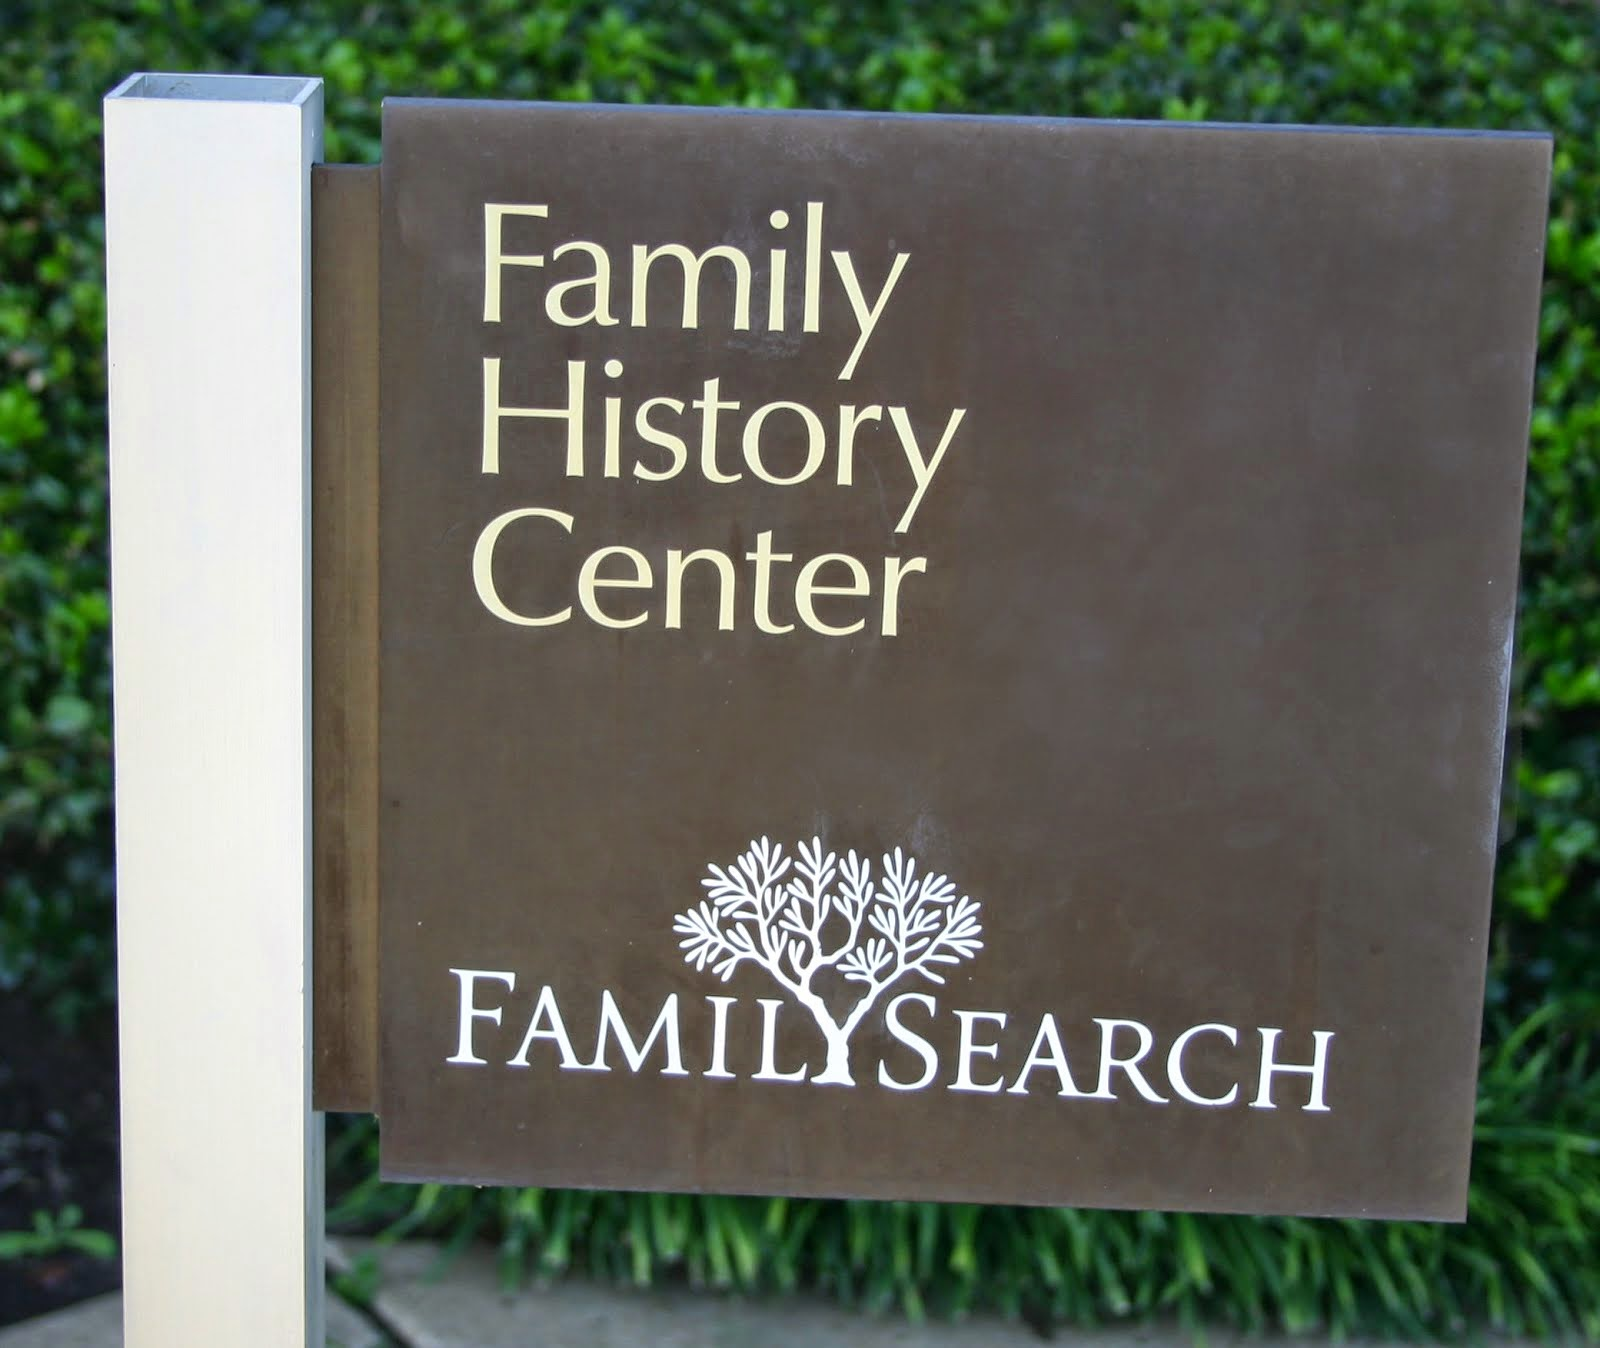 Family History Center is located on the back side of the building